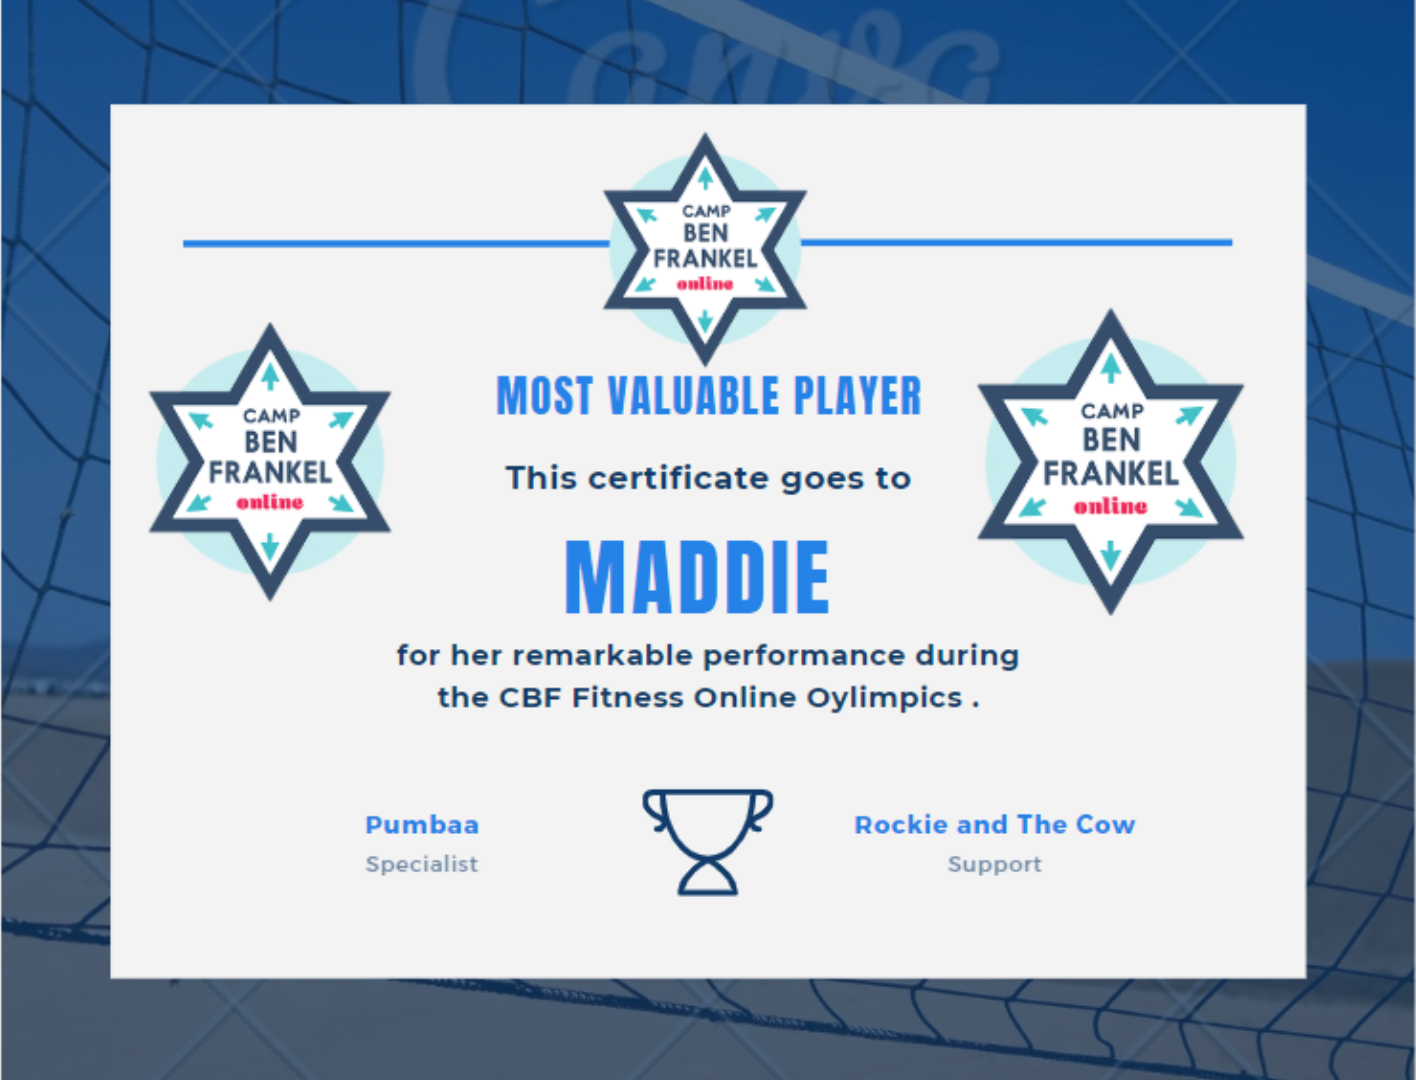 Maddie - Most Valuable Player